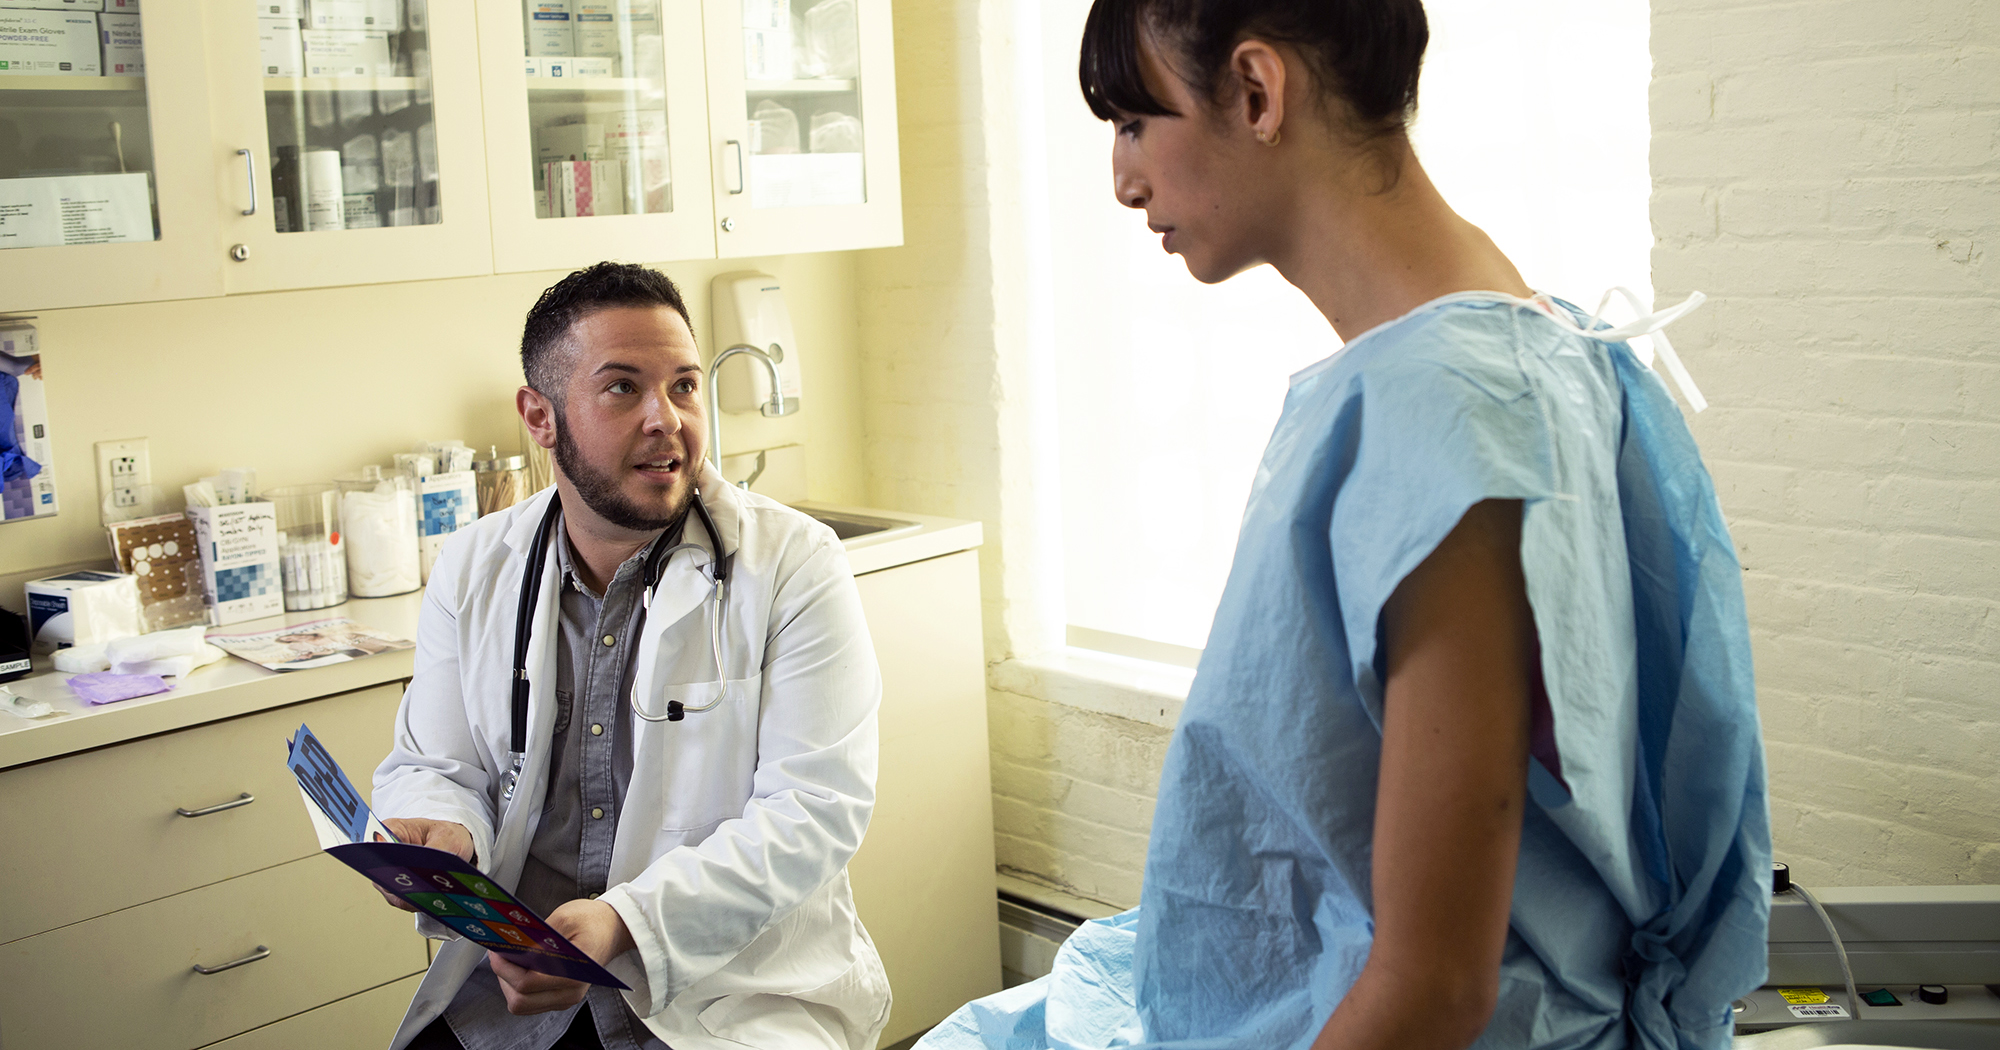 Doctor talking to patient wearing a hospital gown sitting on a bed. A new study on trans healthcare has been launched.